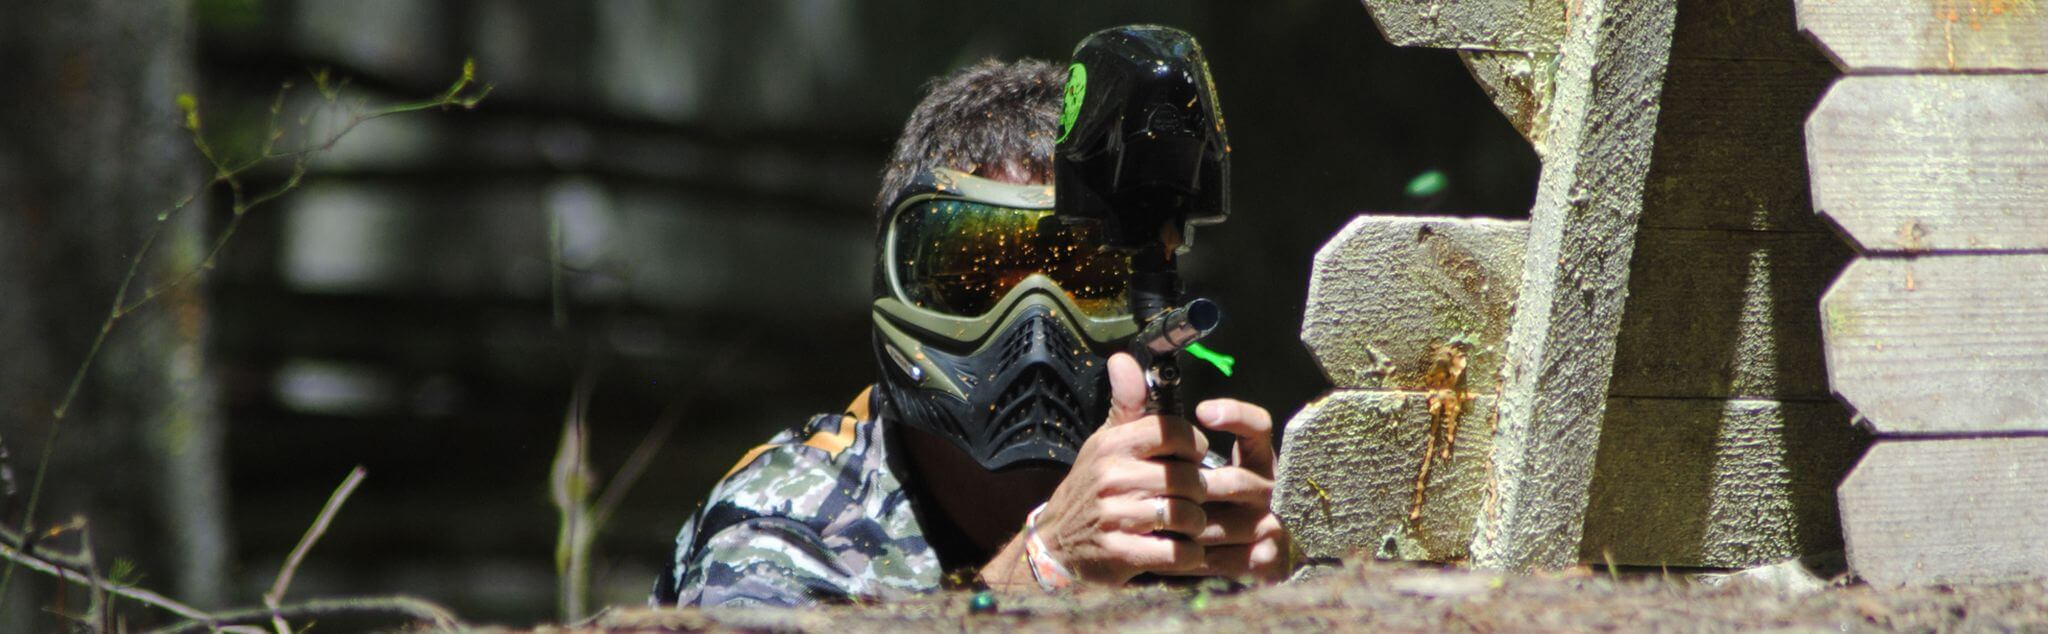 Paintball en Eivissa